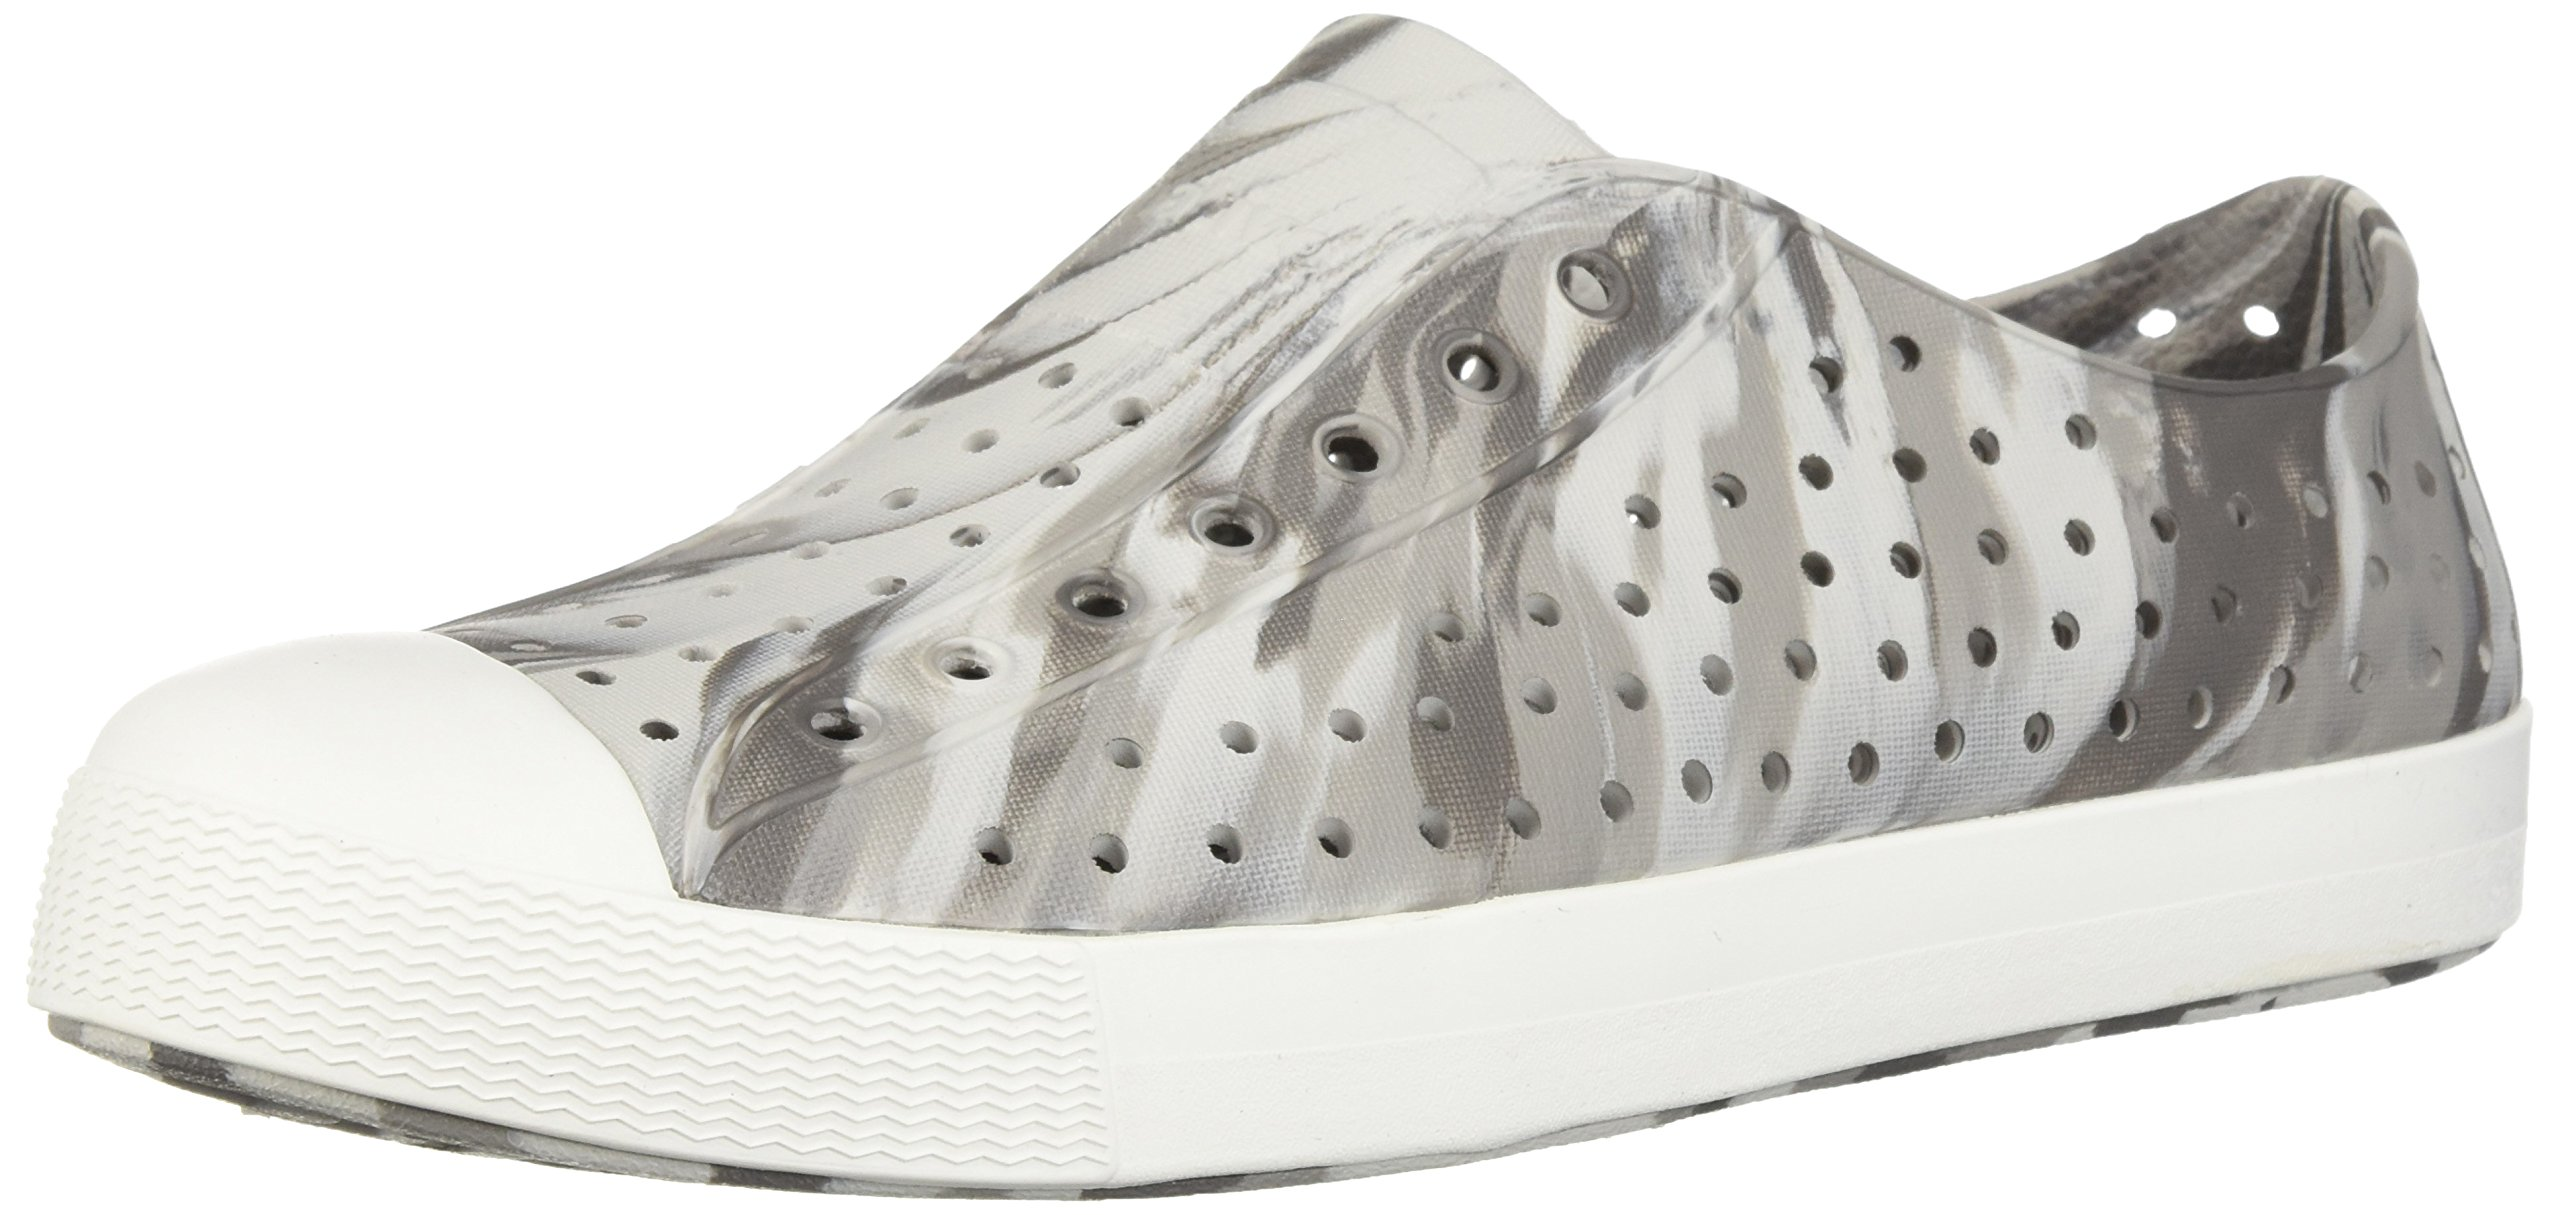 Native Kids Marbled Jefferson Water Proof Shoes, Dublin Grey/Shell White/Marbled, 5 Medium US Big Kid by Native Shoes (Image #1)